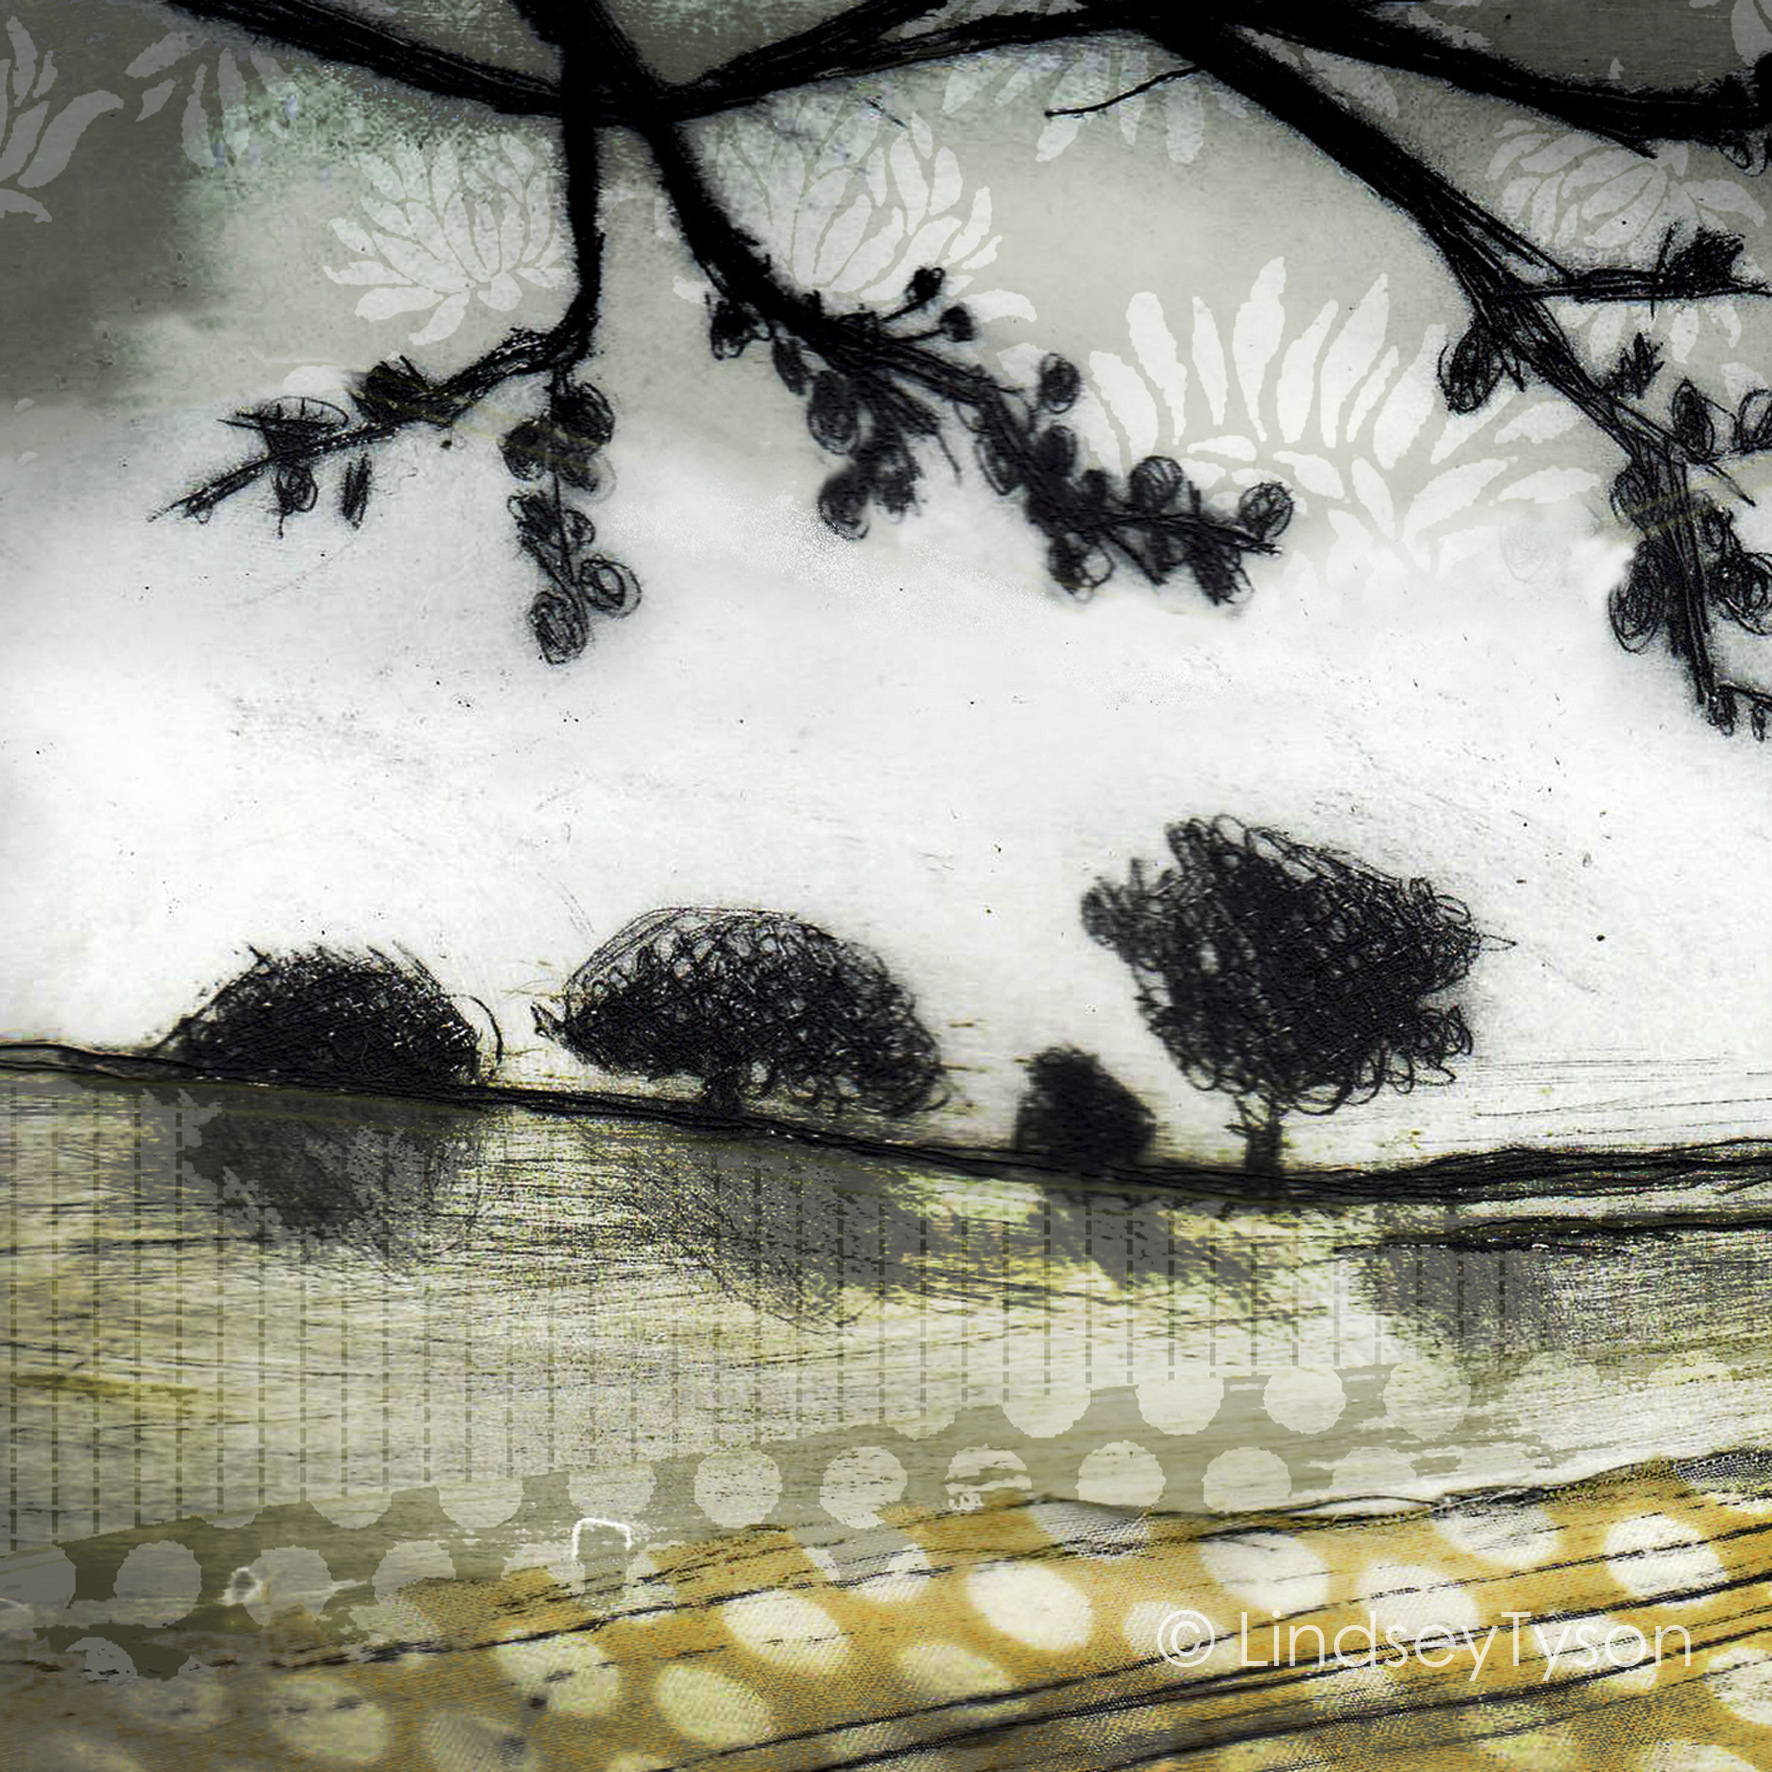 114 distant trees with fabric 2b.jpg